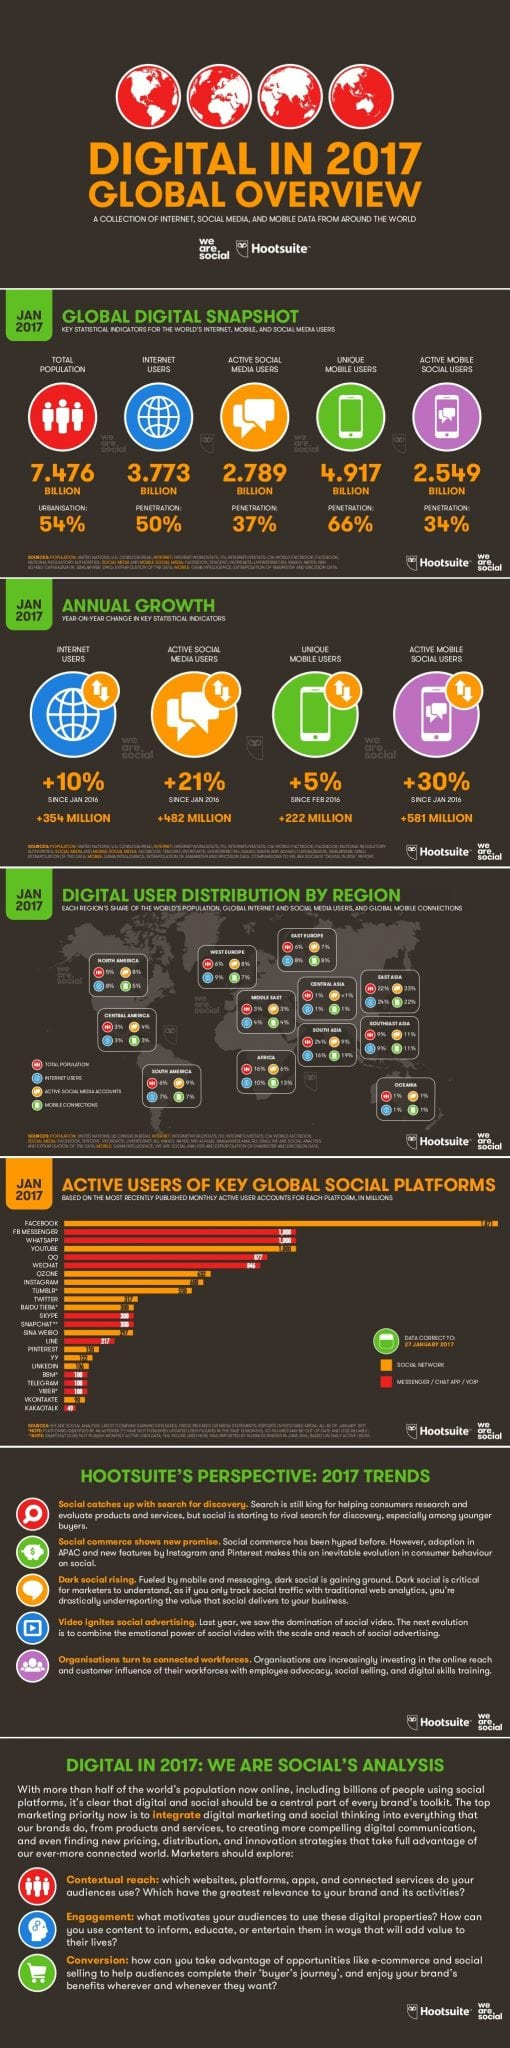 Where-Should-You-be-Active-Global-Social-Media-Usage-Stats-for-2017-1